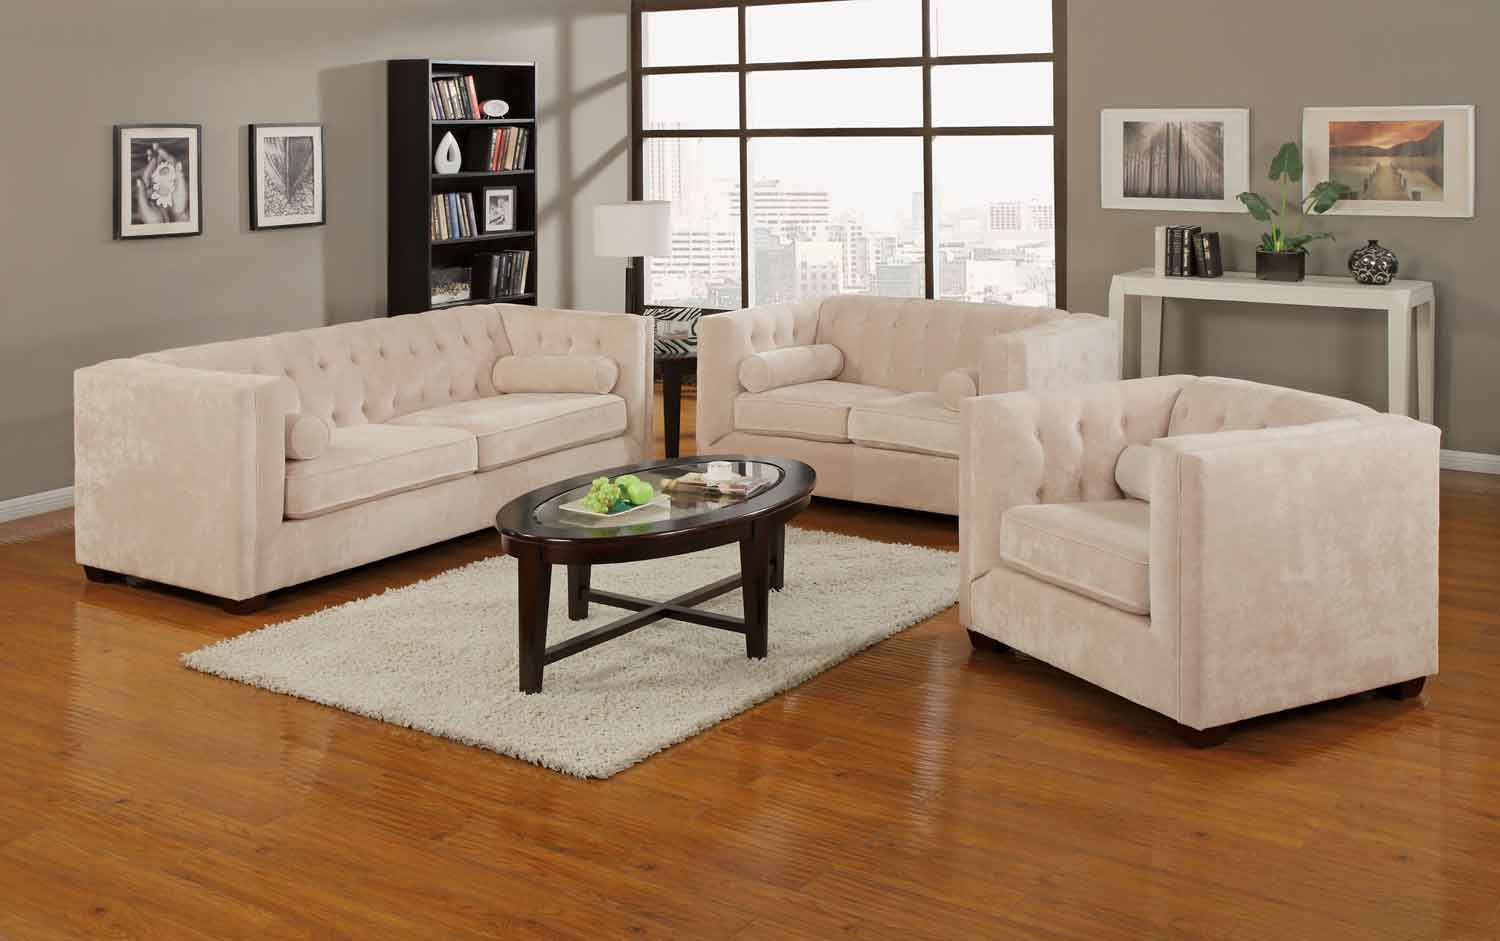 Coaster Alexis Living Room Set - Almond